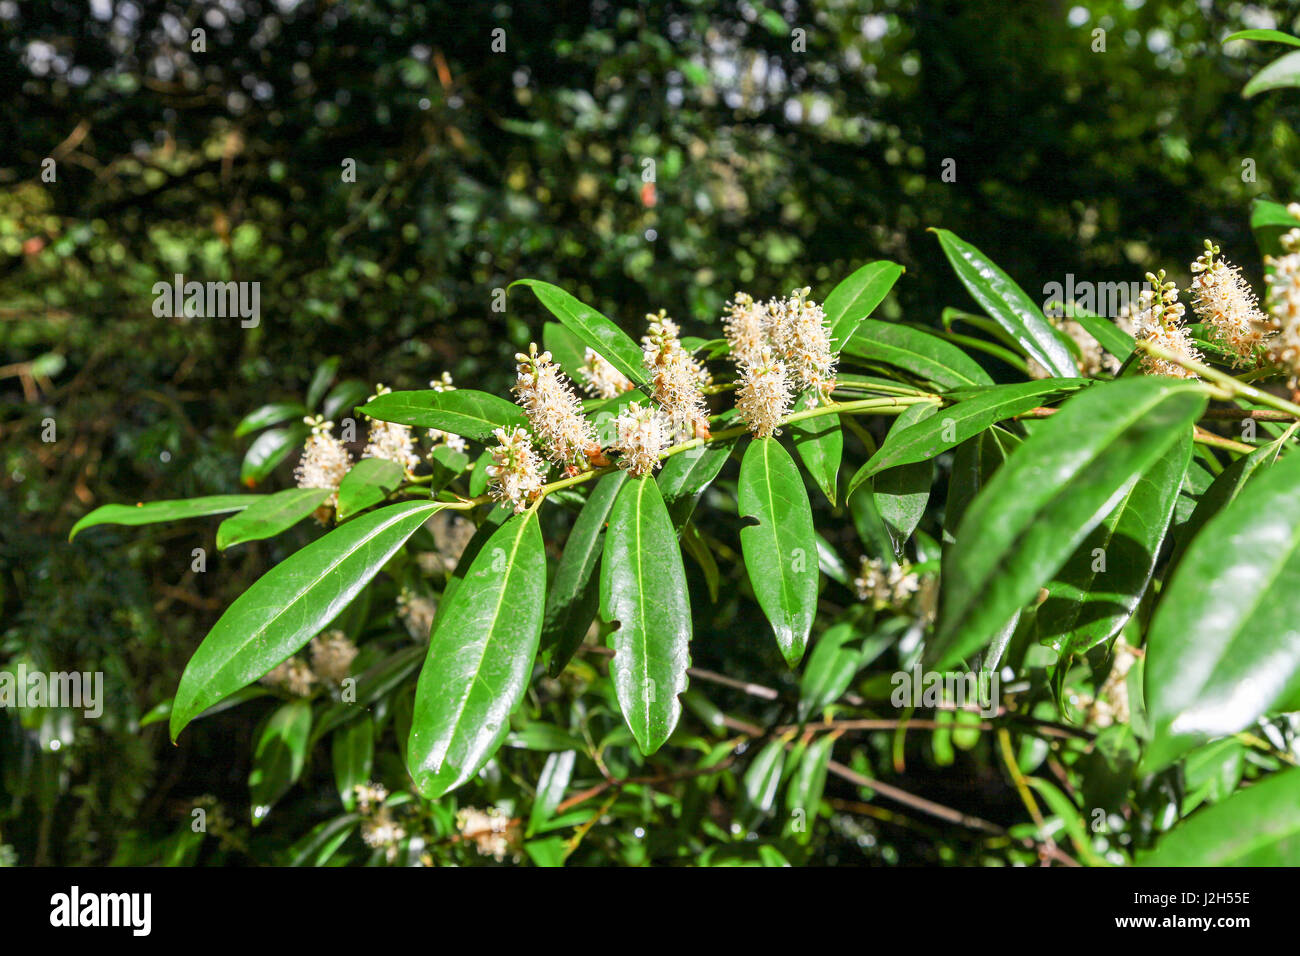 The white Flowers and shiny evergreen leaves of a True Laurel (Laurus nobilis) or English Laurel or Bay is an aromatic - Stock Image